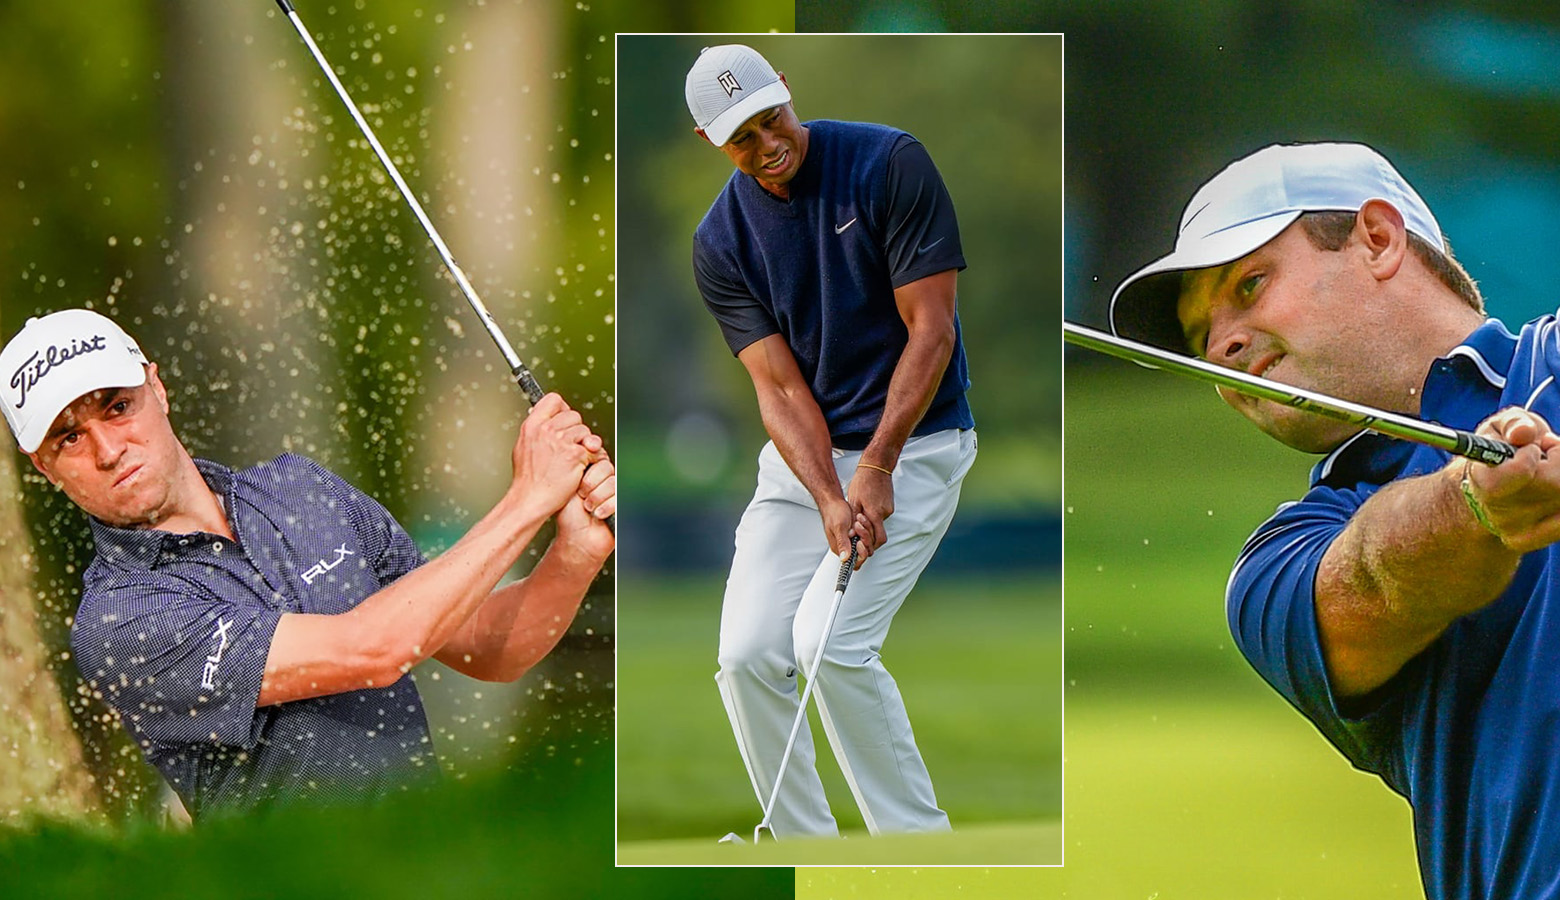 Thomas registers a superb 65, as Woods closes with 73 in a roller-coaster; Reed lands ace